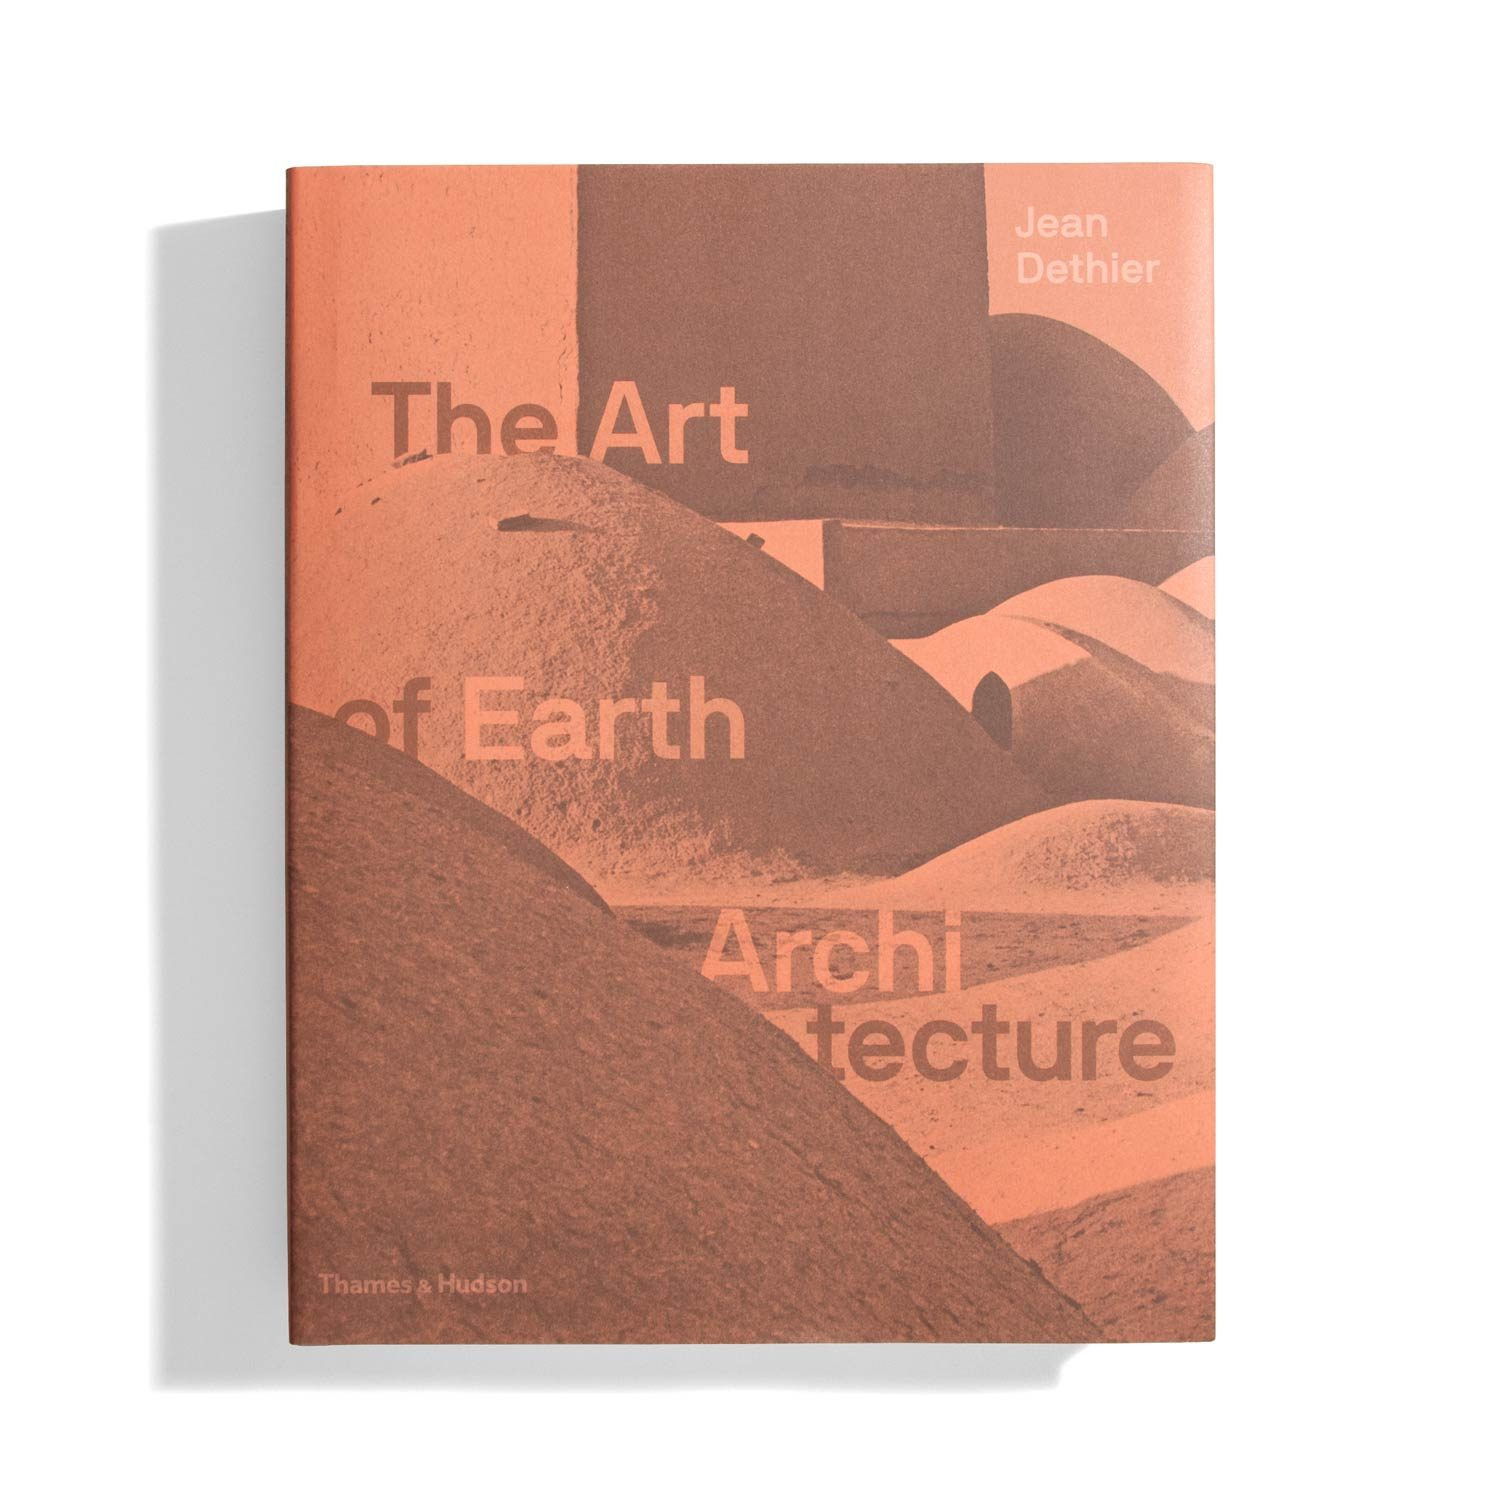 The Art of Earth Architecture - Jean Dethier